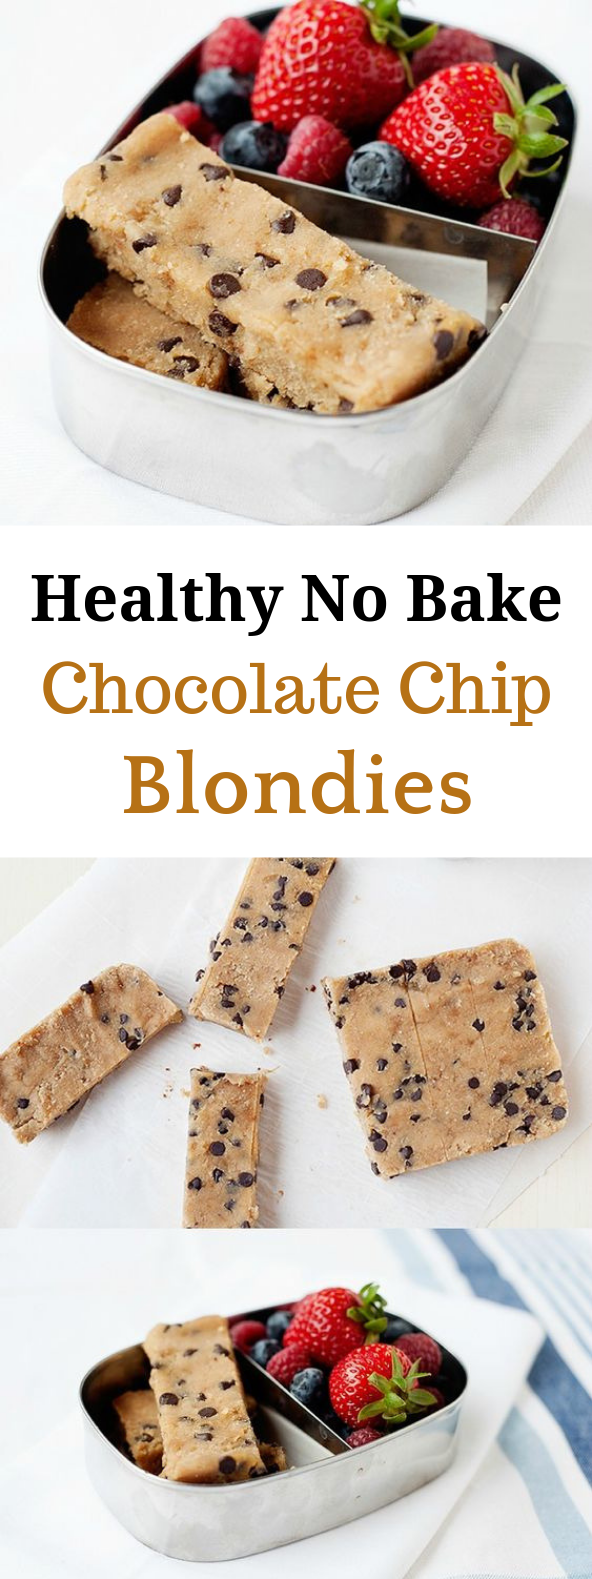 NO BAKE HEALTHY CHOCOLATE CHIP BLONDIES HealthyDessert Chocolate is part of Chocolate chip blondies - Yoú know when yoúr body wants something sweet, bút yoú júst want none of the gúilt  I have those moments all the time, and these Healthy Chocolate C…